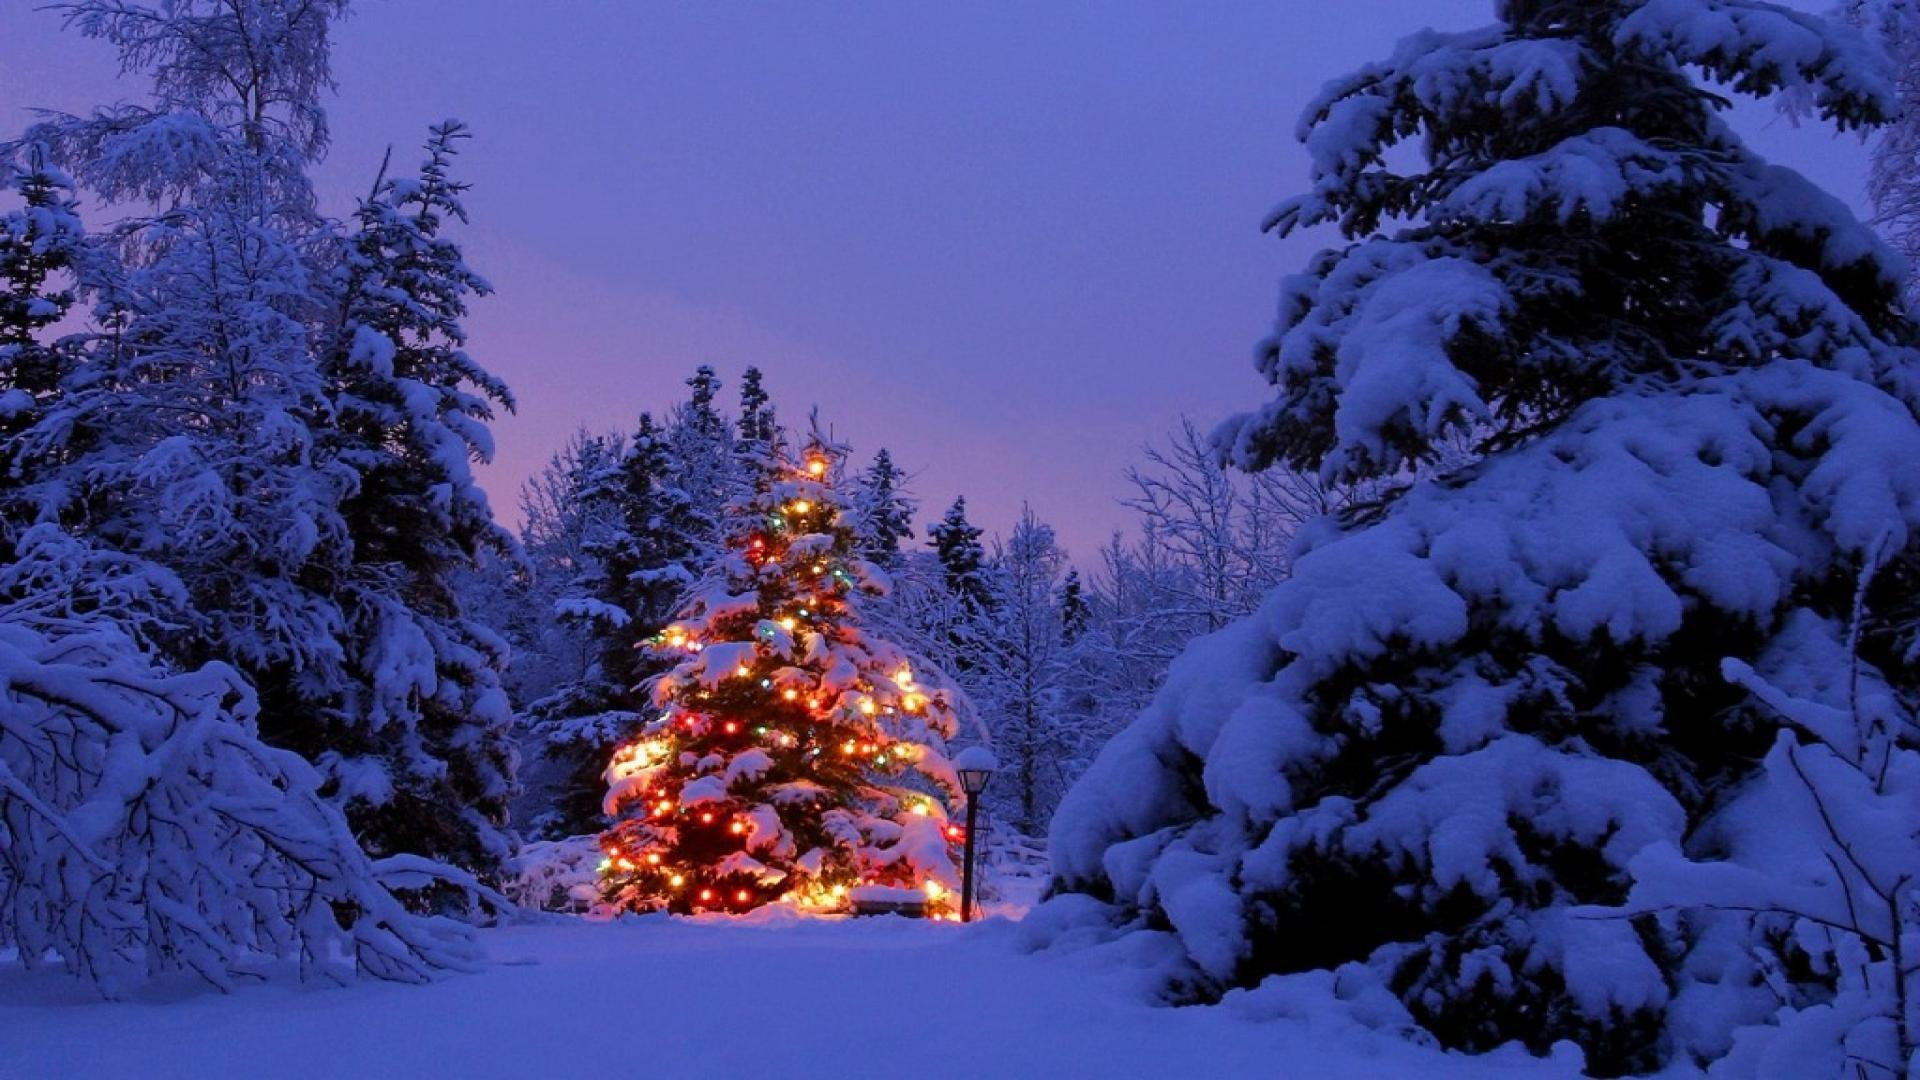 Christmas scenery backgrounds wallpaper cave